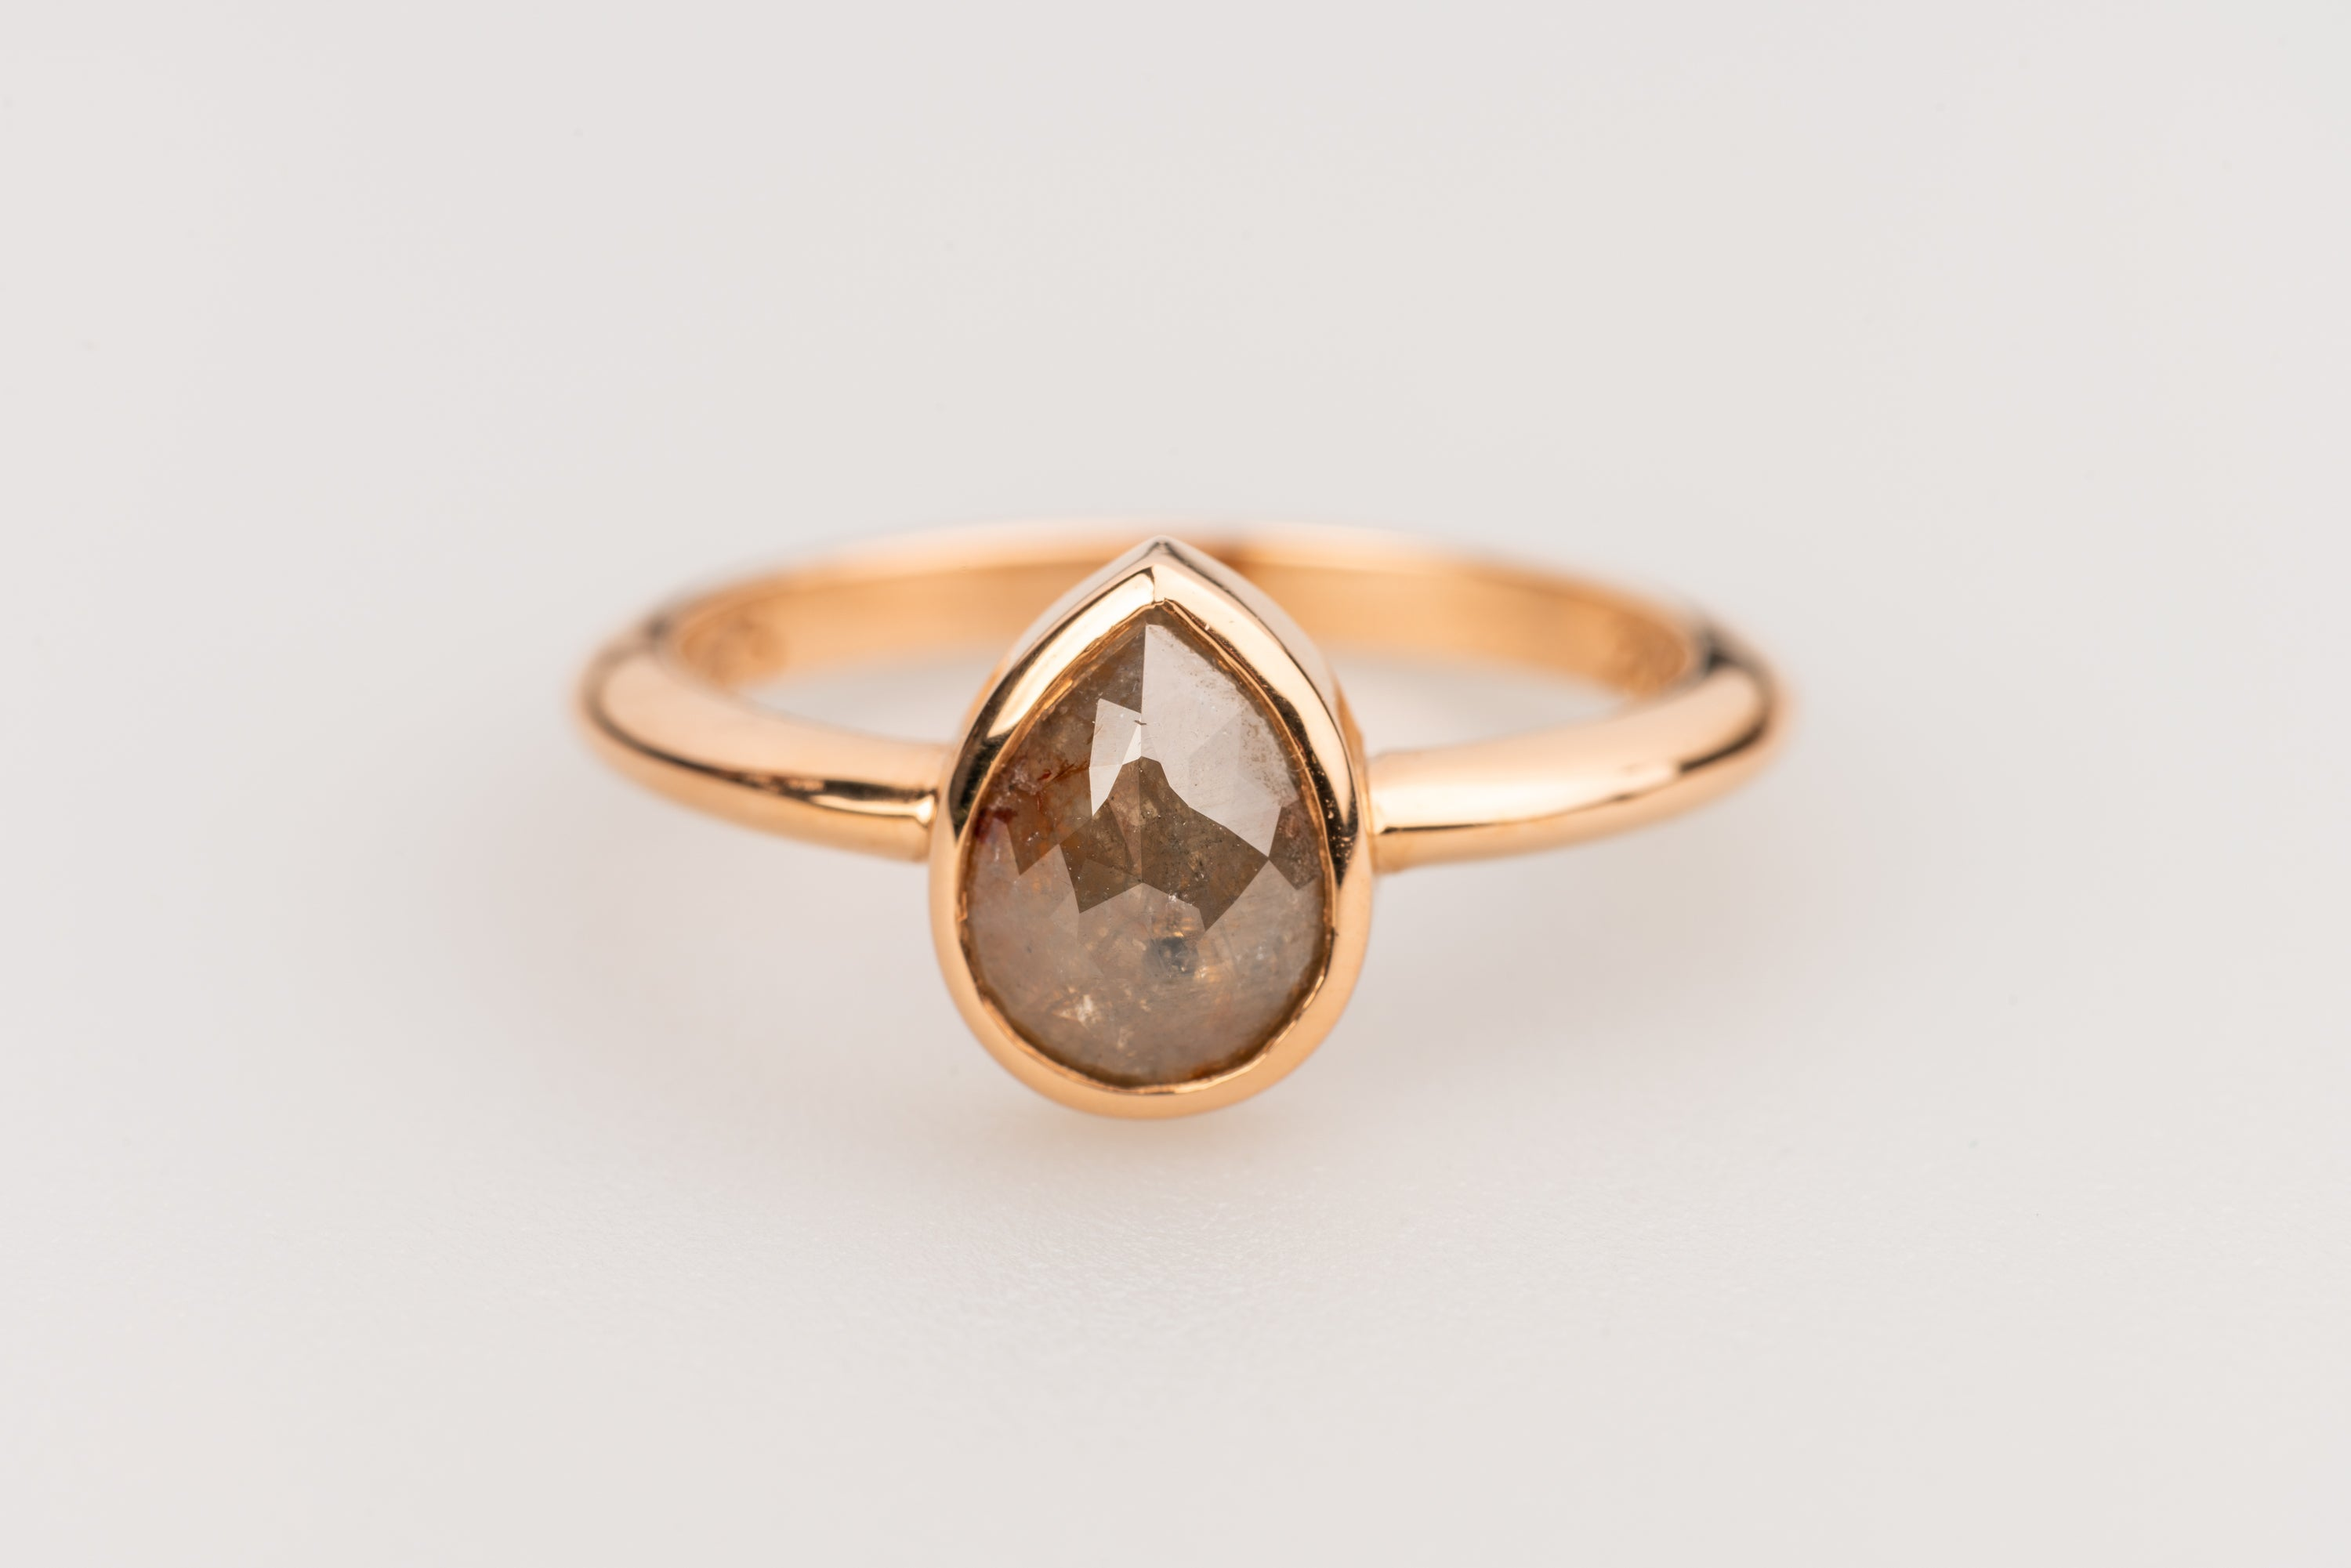 Pear Shaped Rose Cut Diamond Ring in 20k Rose gold